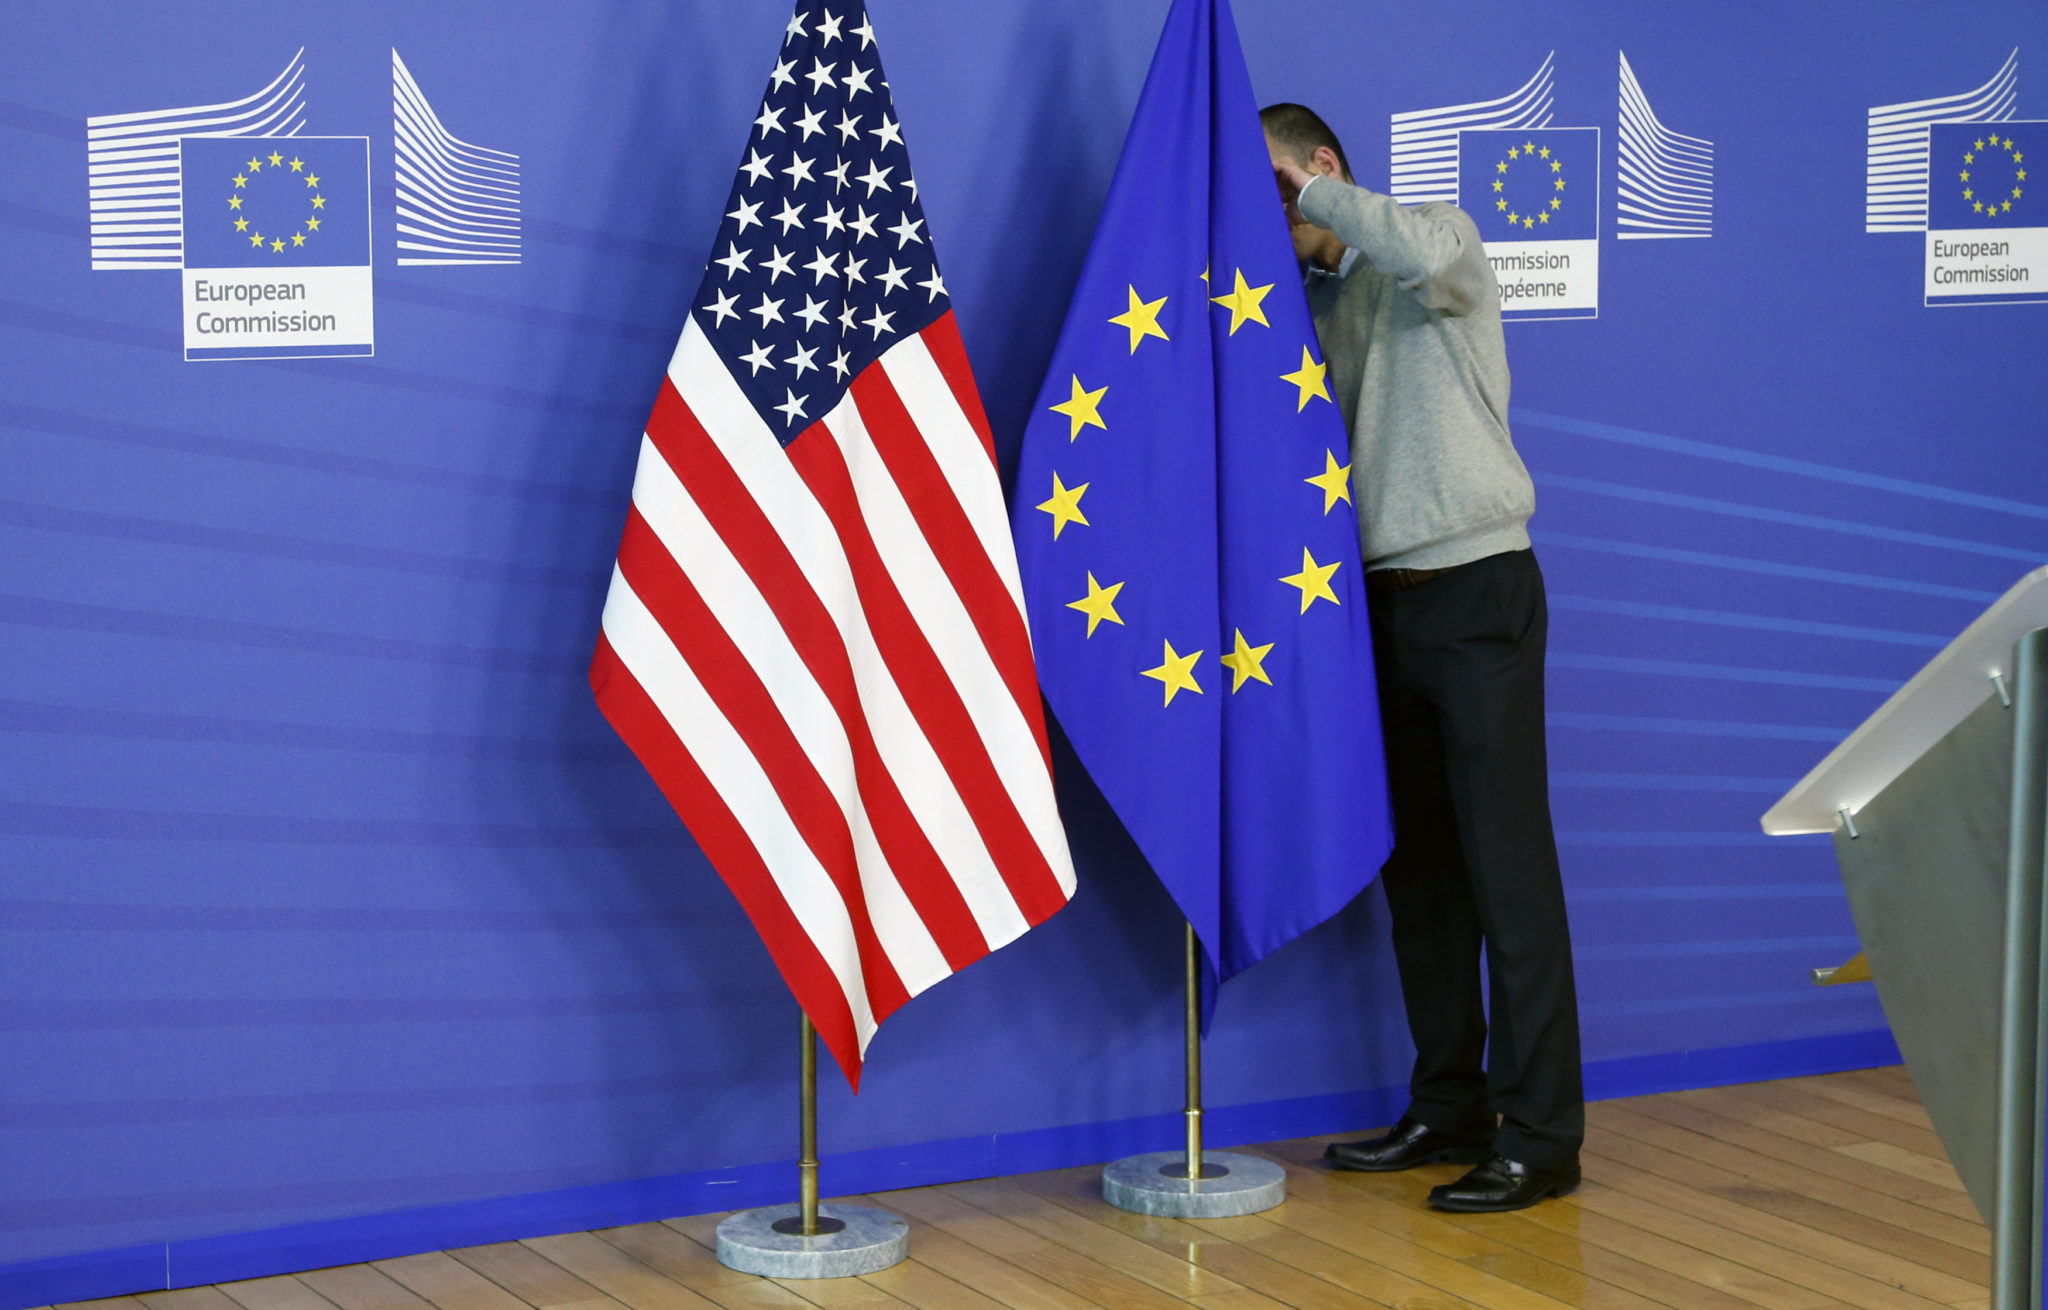 A worker adjusts European Union and U.S. flags at the start of the 2nd round of EU-US trade negotiations for Transatlantic Trade and Investment Partnership at the EU Commission headquarters in Brussels November 11, 2013. REUTERS/Francois Lenoir (BELGIUM - Tags: POLITICS BUSINESS) - RTX15919